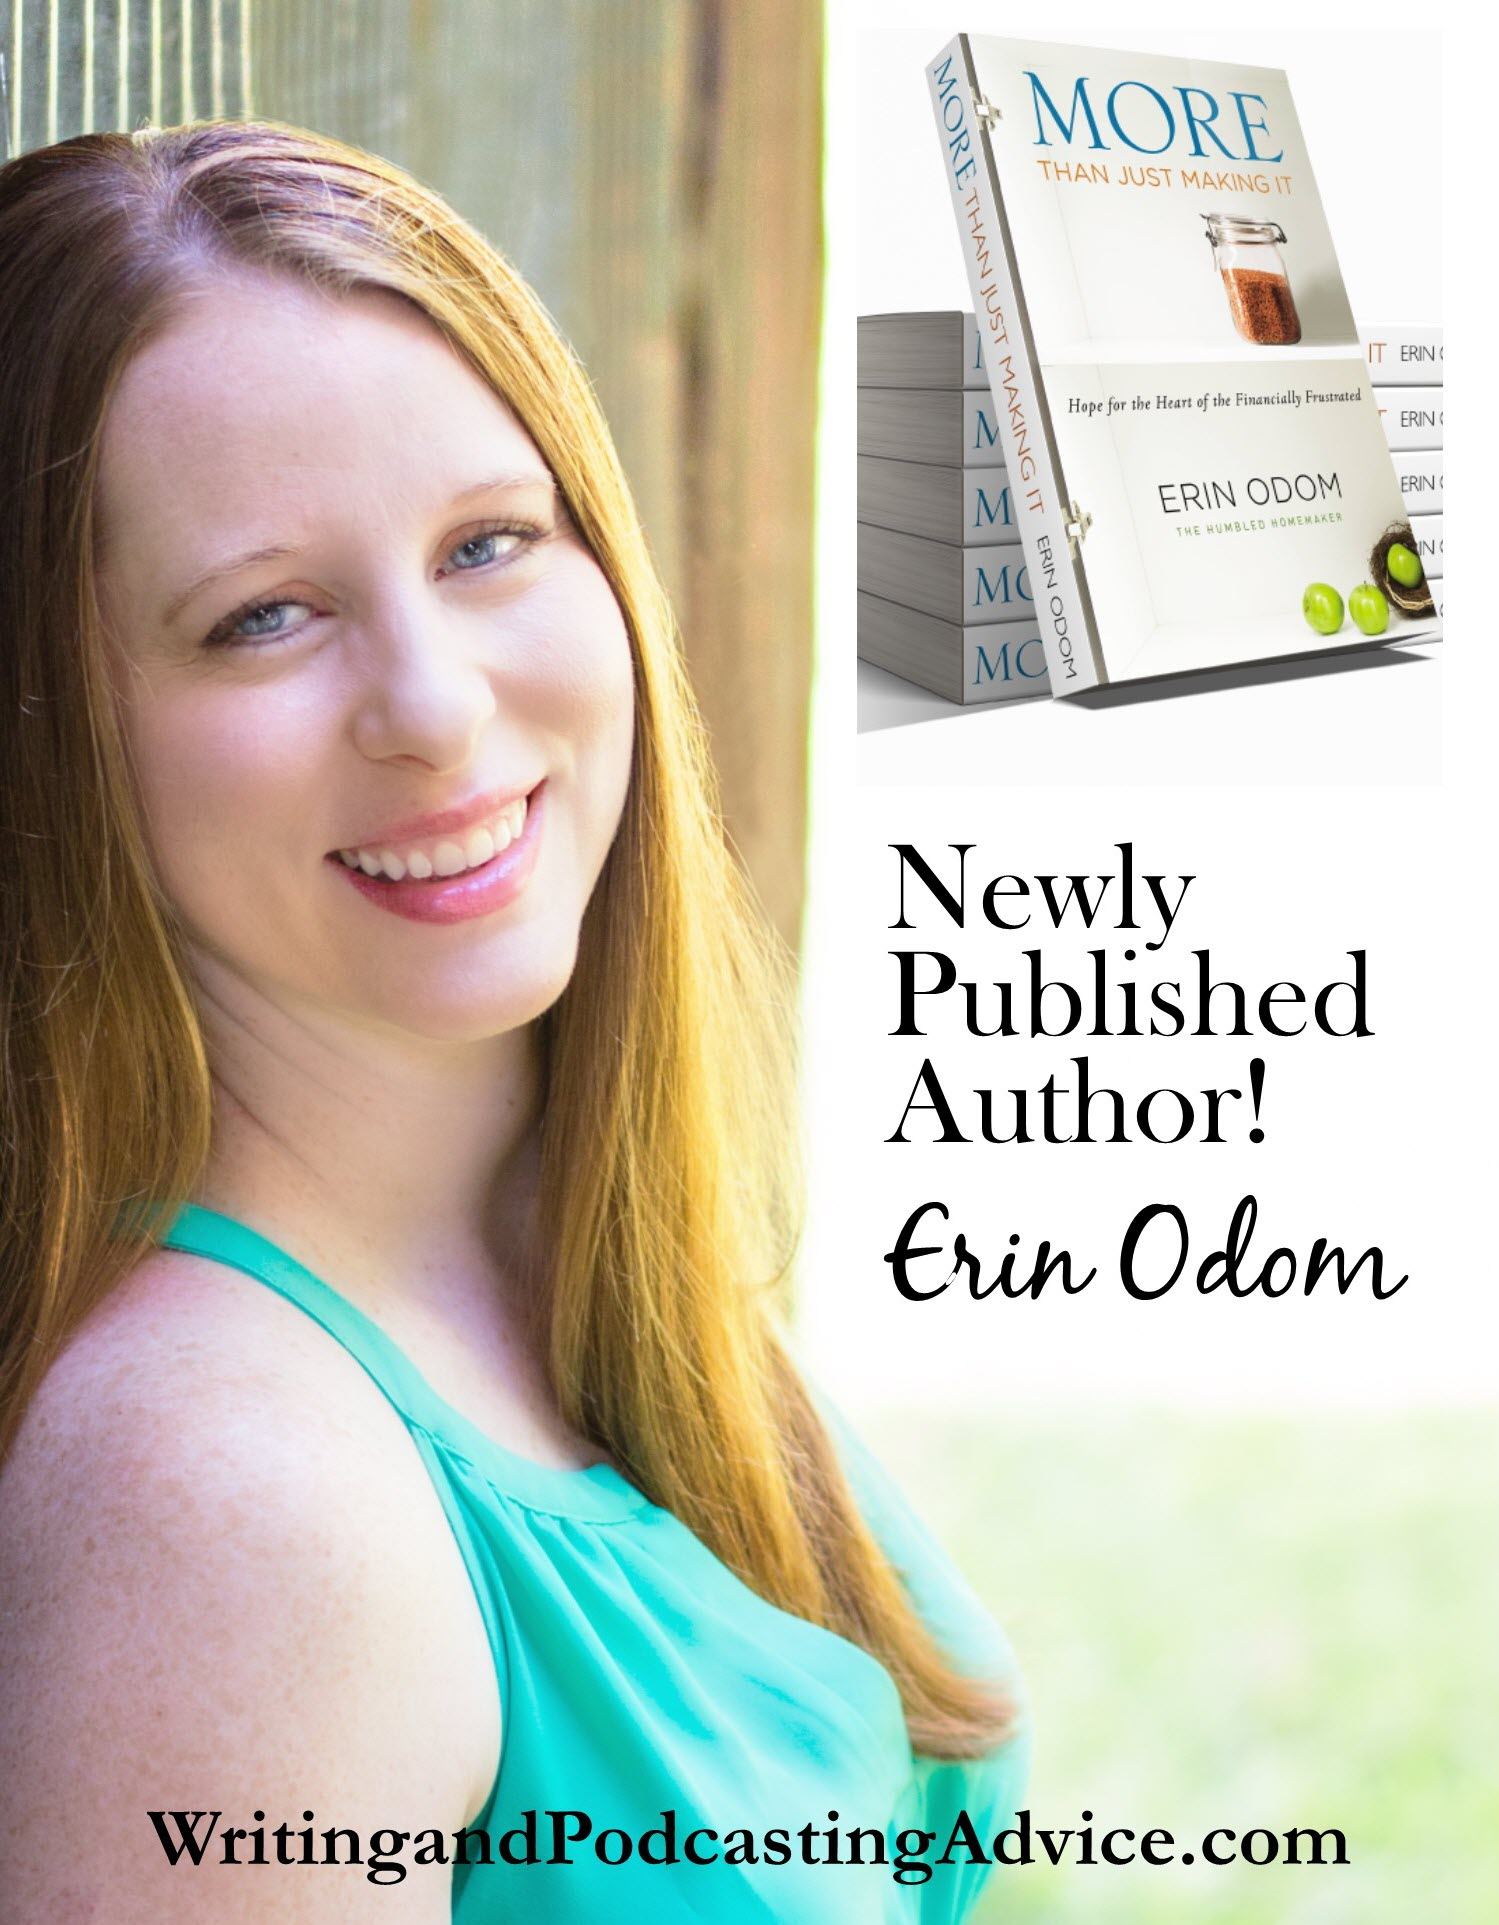 erin odom author